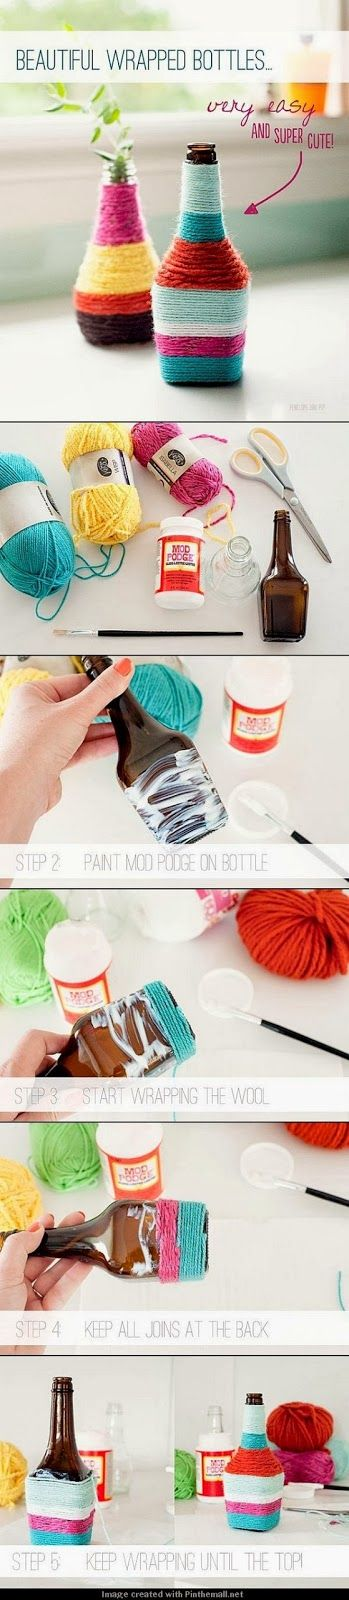 DIY-Home-Decor: Beautiful Wrapped Bottles DIY